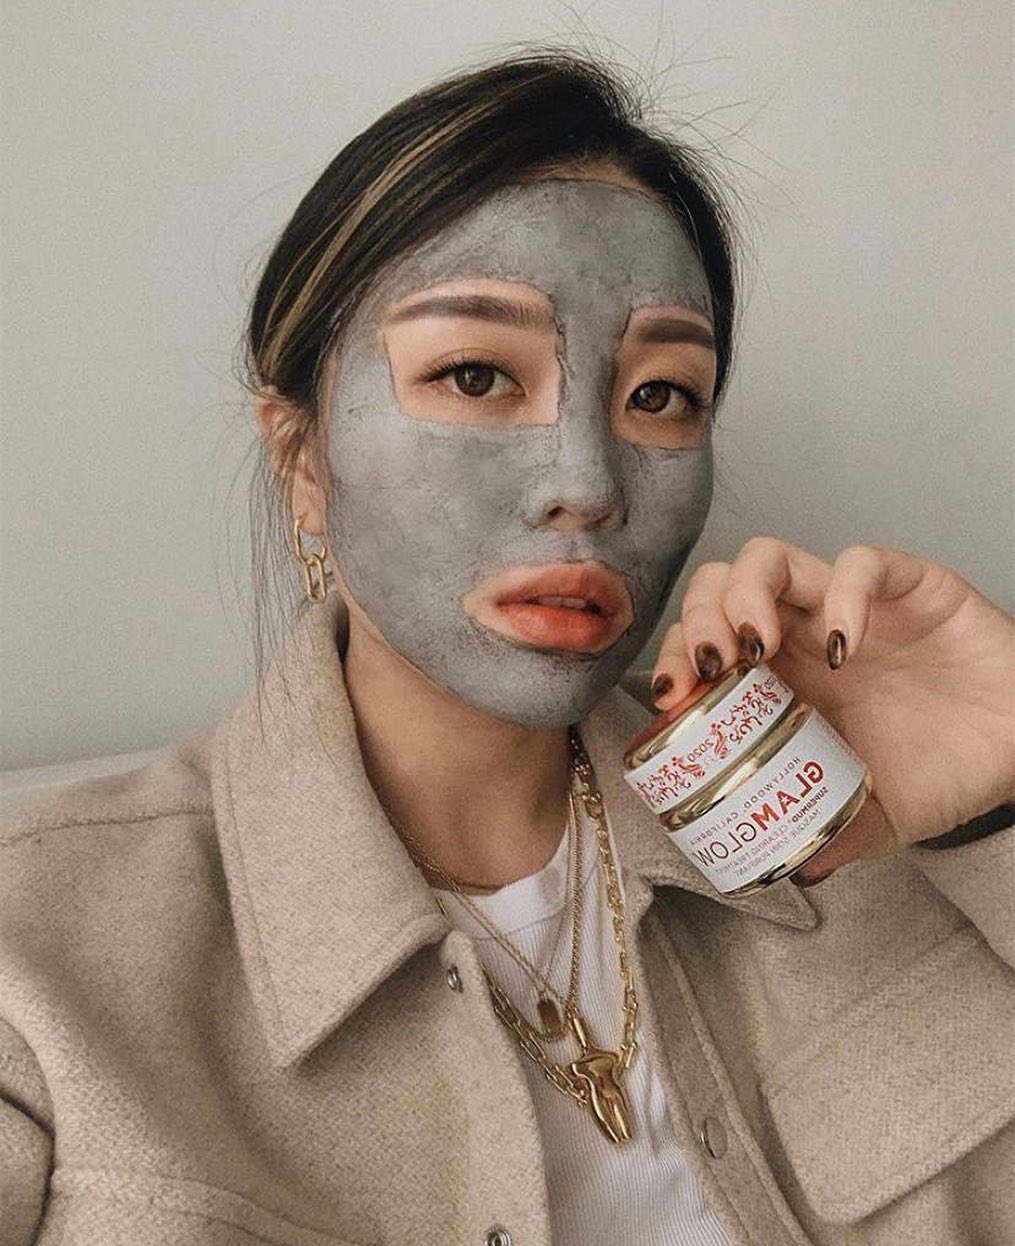 cher-bai-glamglow-supermud-face-mask-instagram